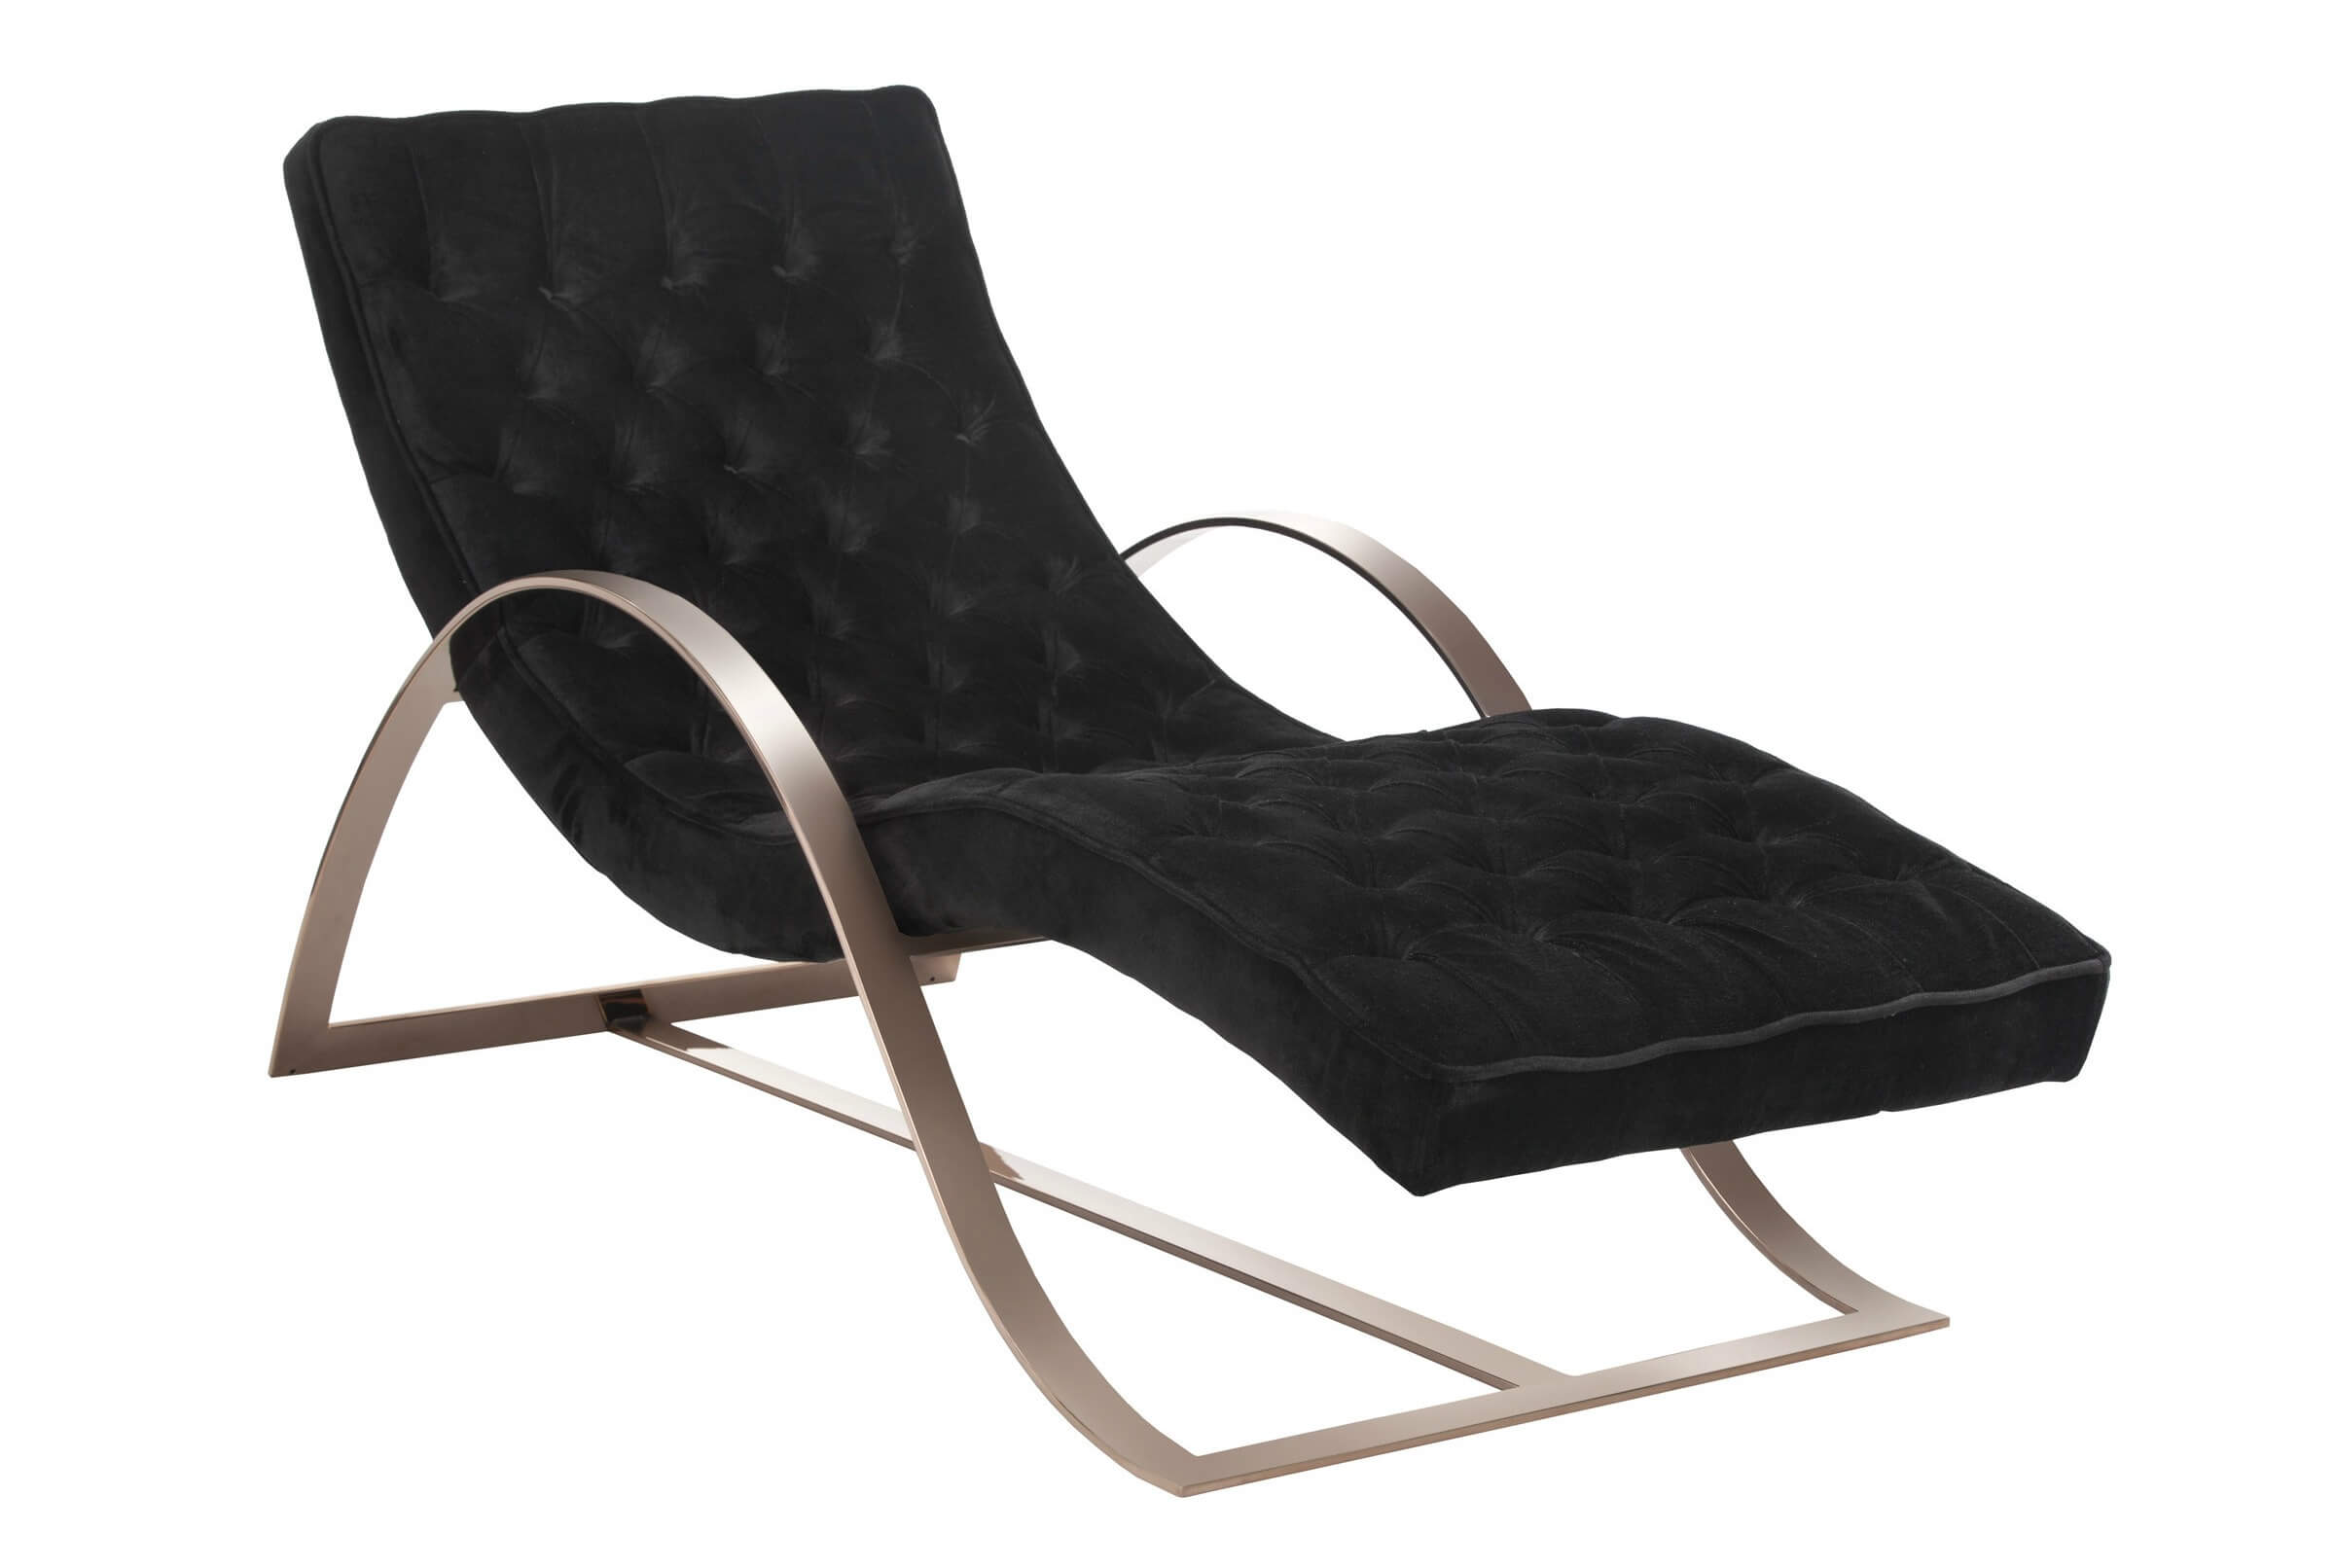 Top 20 Types Of Black Chaise Lounges Buying Guide